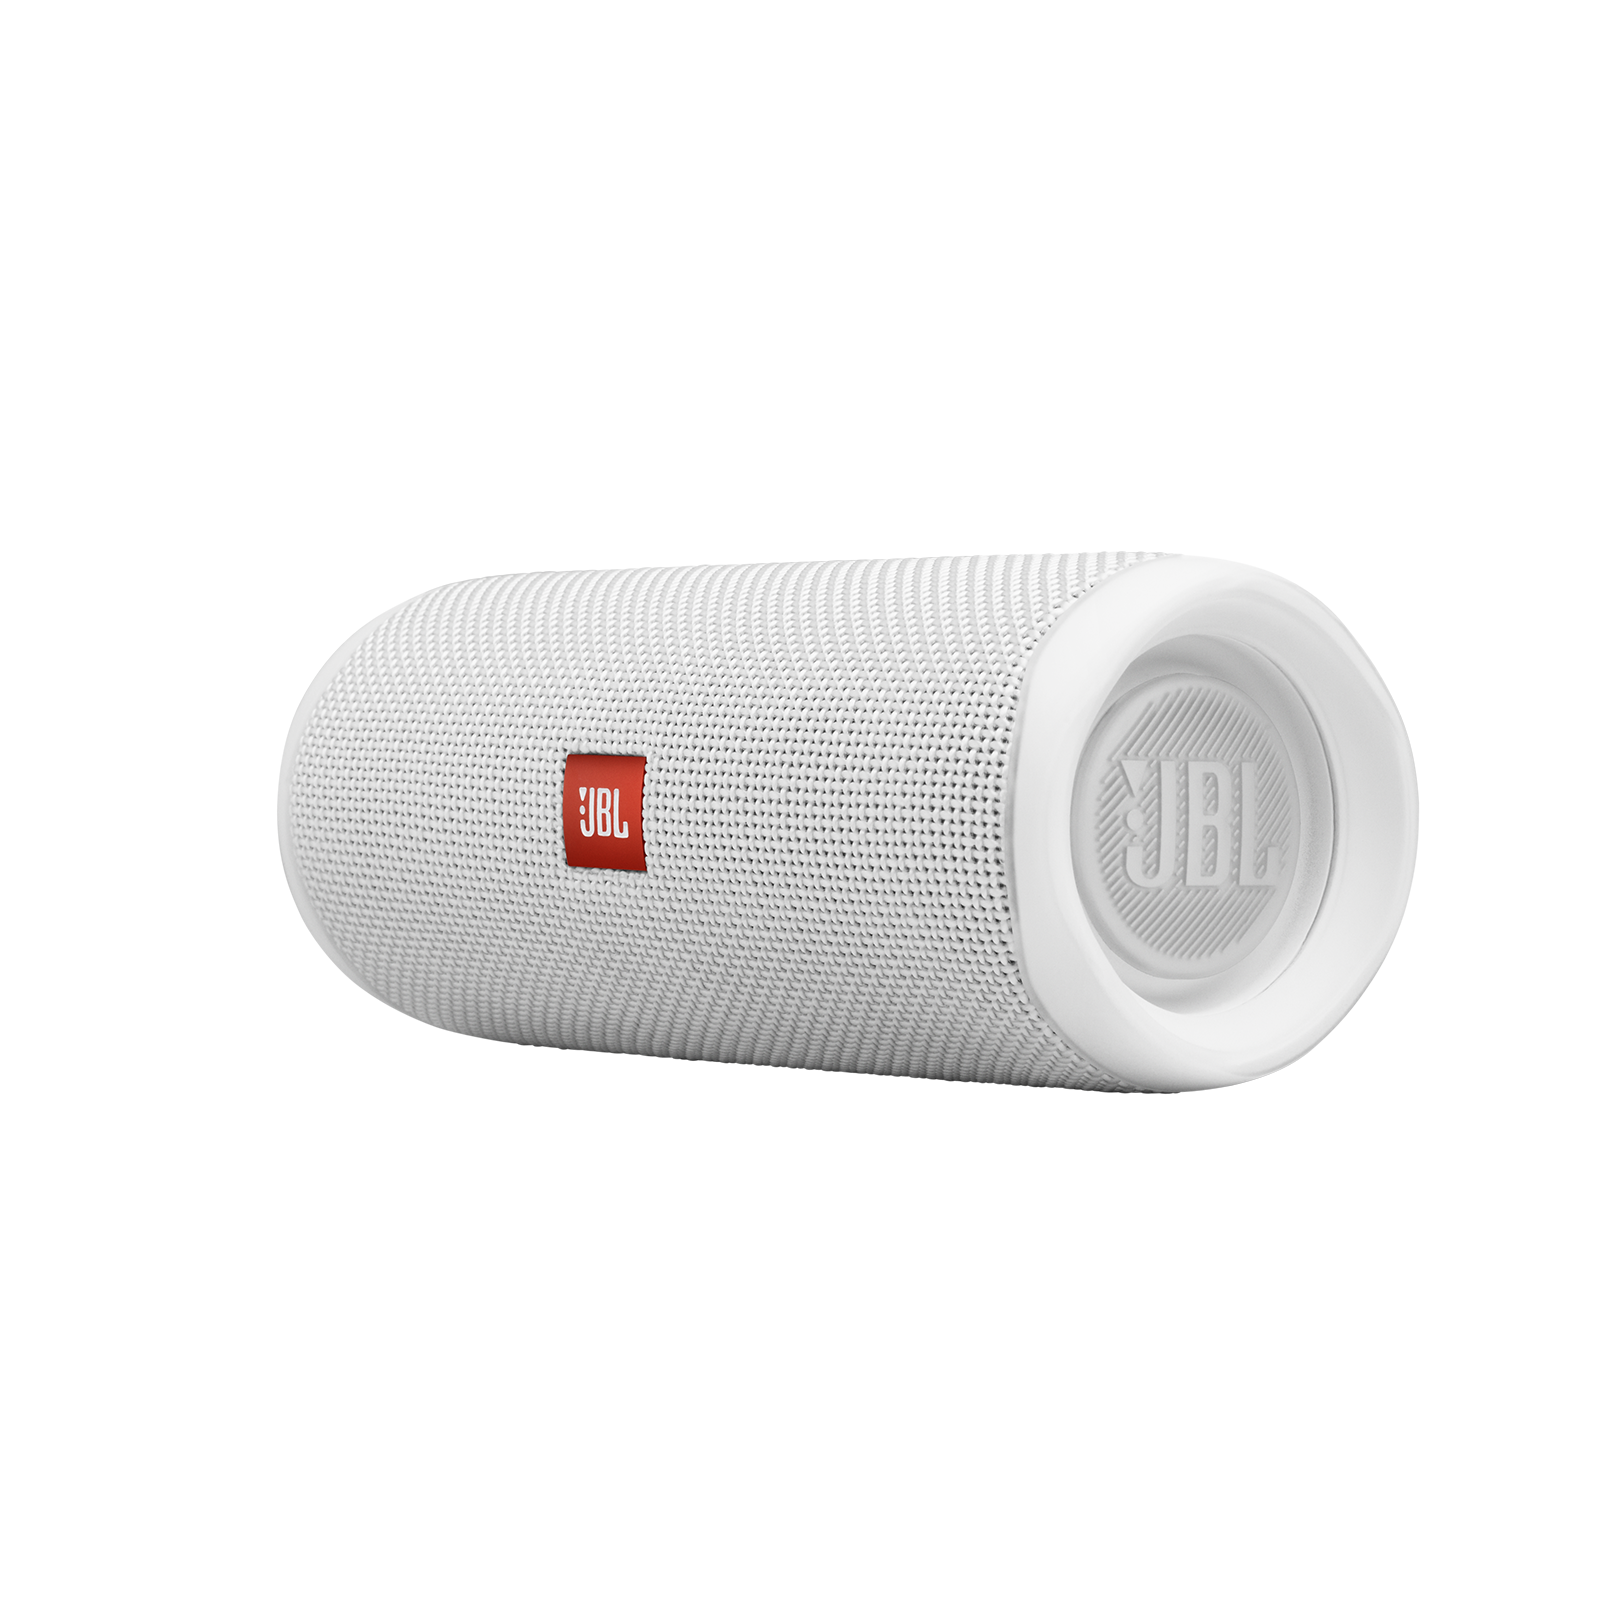 JBL FLIP 5 - White - Portable Waterproof Speaker - Detailshot 3